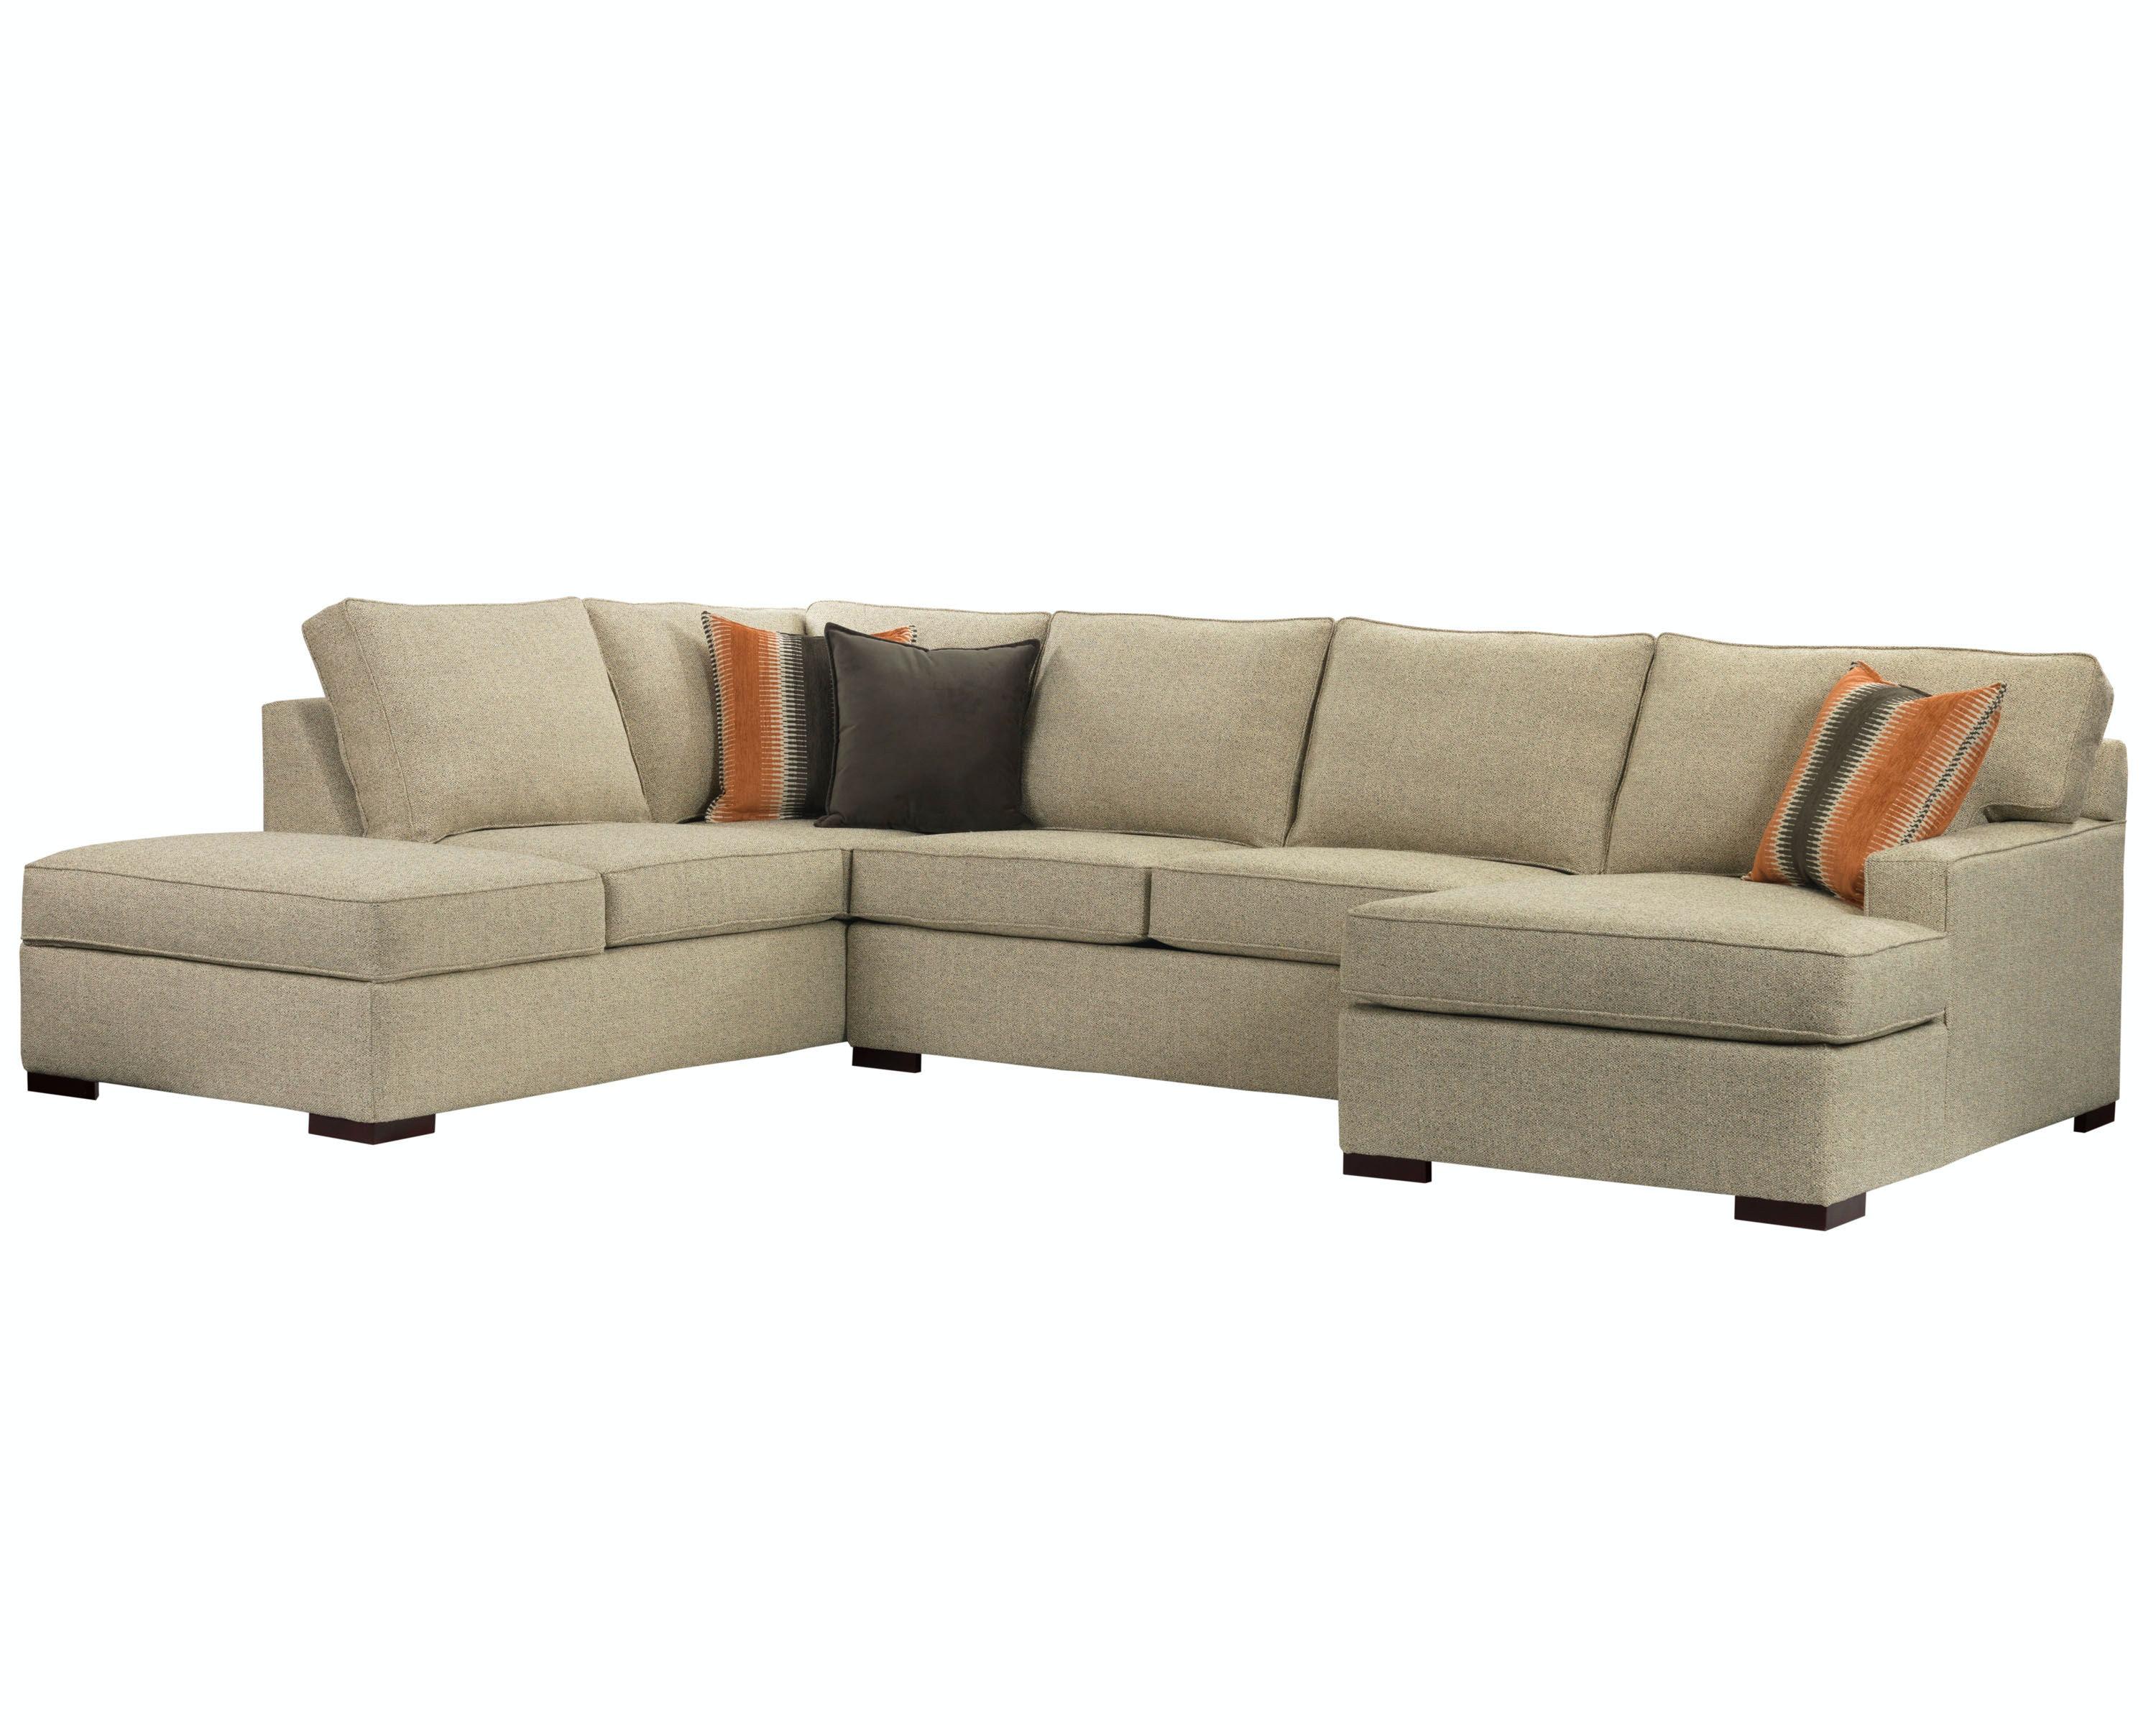 tyson sectional sofa 2 seater leather recliner sale broyhill living room 6636 hamilton